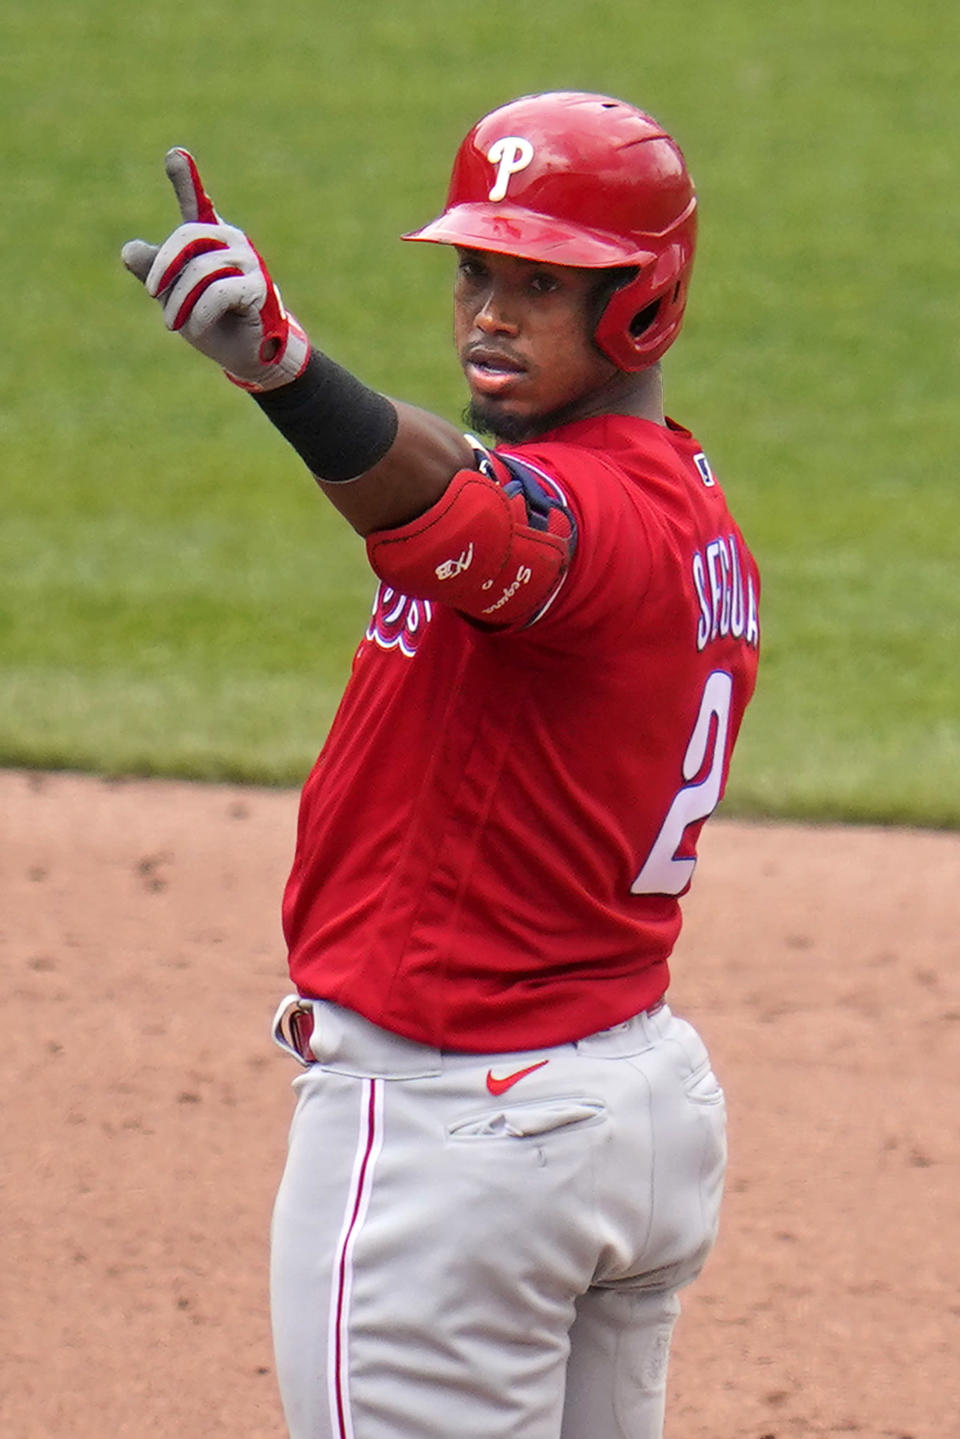 Philadelphia Phillies' Jean Segura stands on second base after hitting a double off Pittsburgh Pirates relief pitcher Cody Ponce, driving in a run during the sixth inning of a baseball game in Pittsburgh, Sunday, Aug. 1, 2021. (AP Photo/Gene J. Puskar)